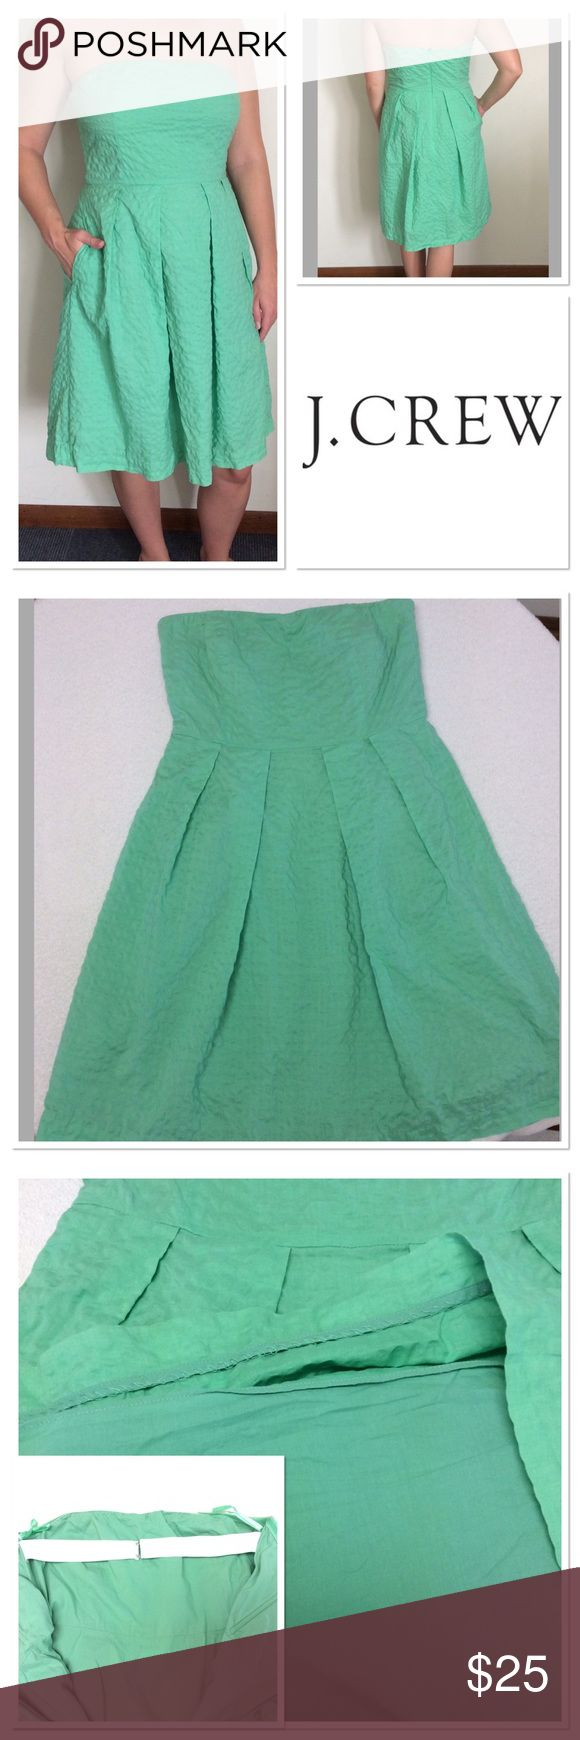 """8 J CREW green 100% cotton strapless dress Very cute and comfortable J. CREW green pleated textured cotton dress. Discreet pockets make this super casual and has elastic back strap for better fit. The dress is lined. Has to go as green is not my color, though it breaks my heart. I love this style of dress. Size tag has been removed and hangar straps are shortened to hang better.  Measurements taken laying flat: bust: 15.5"""" , length 30.5"""", empire waist 14.25"""" J. Crew Dresses Strapless"""